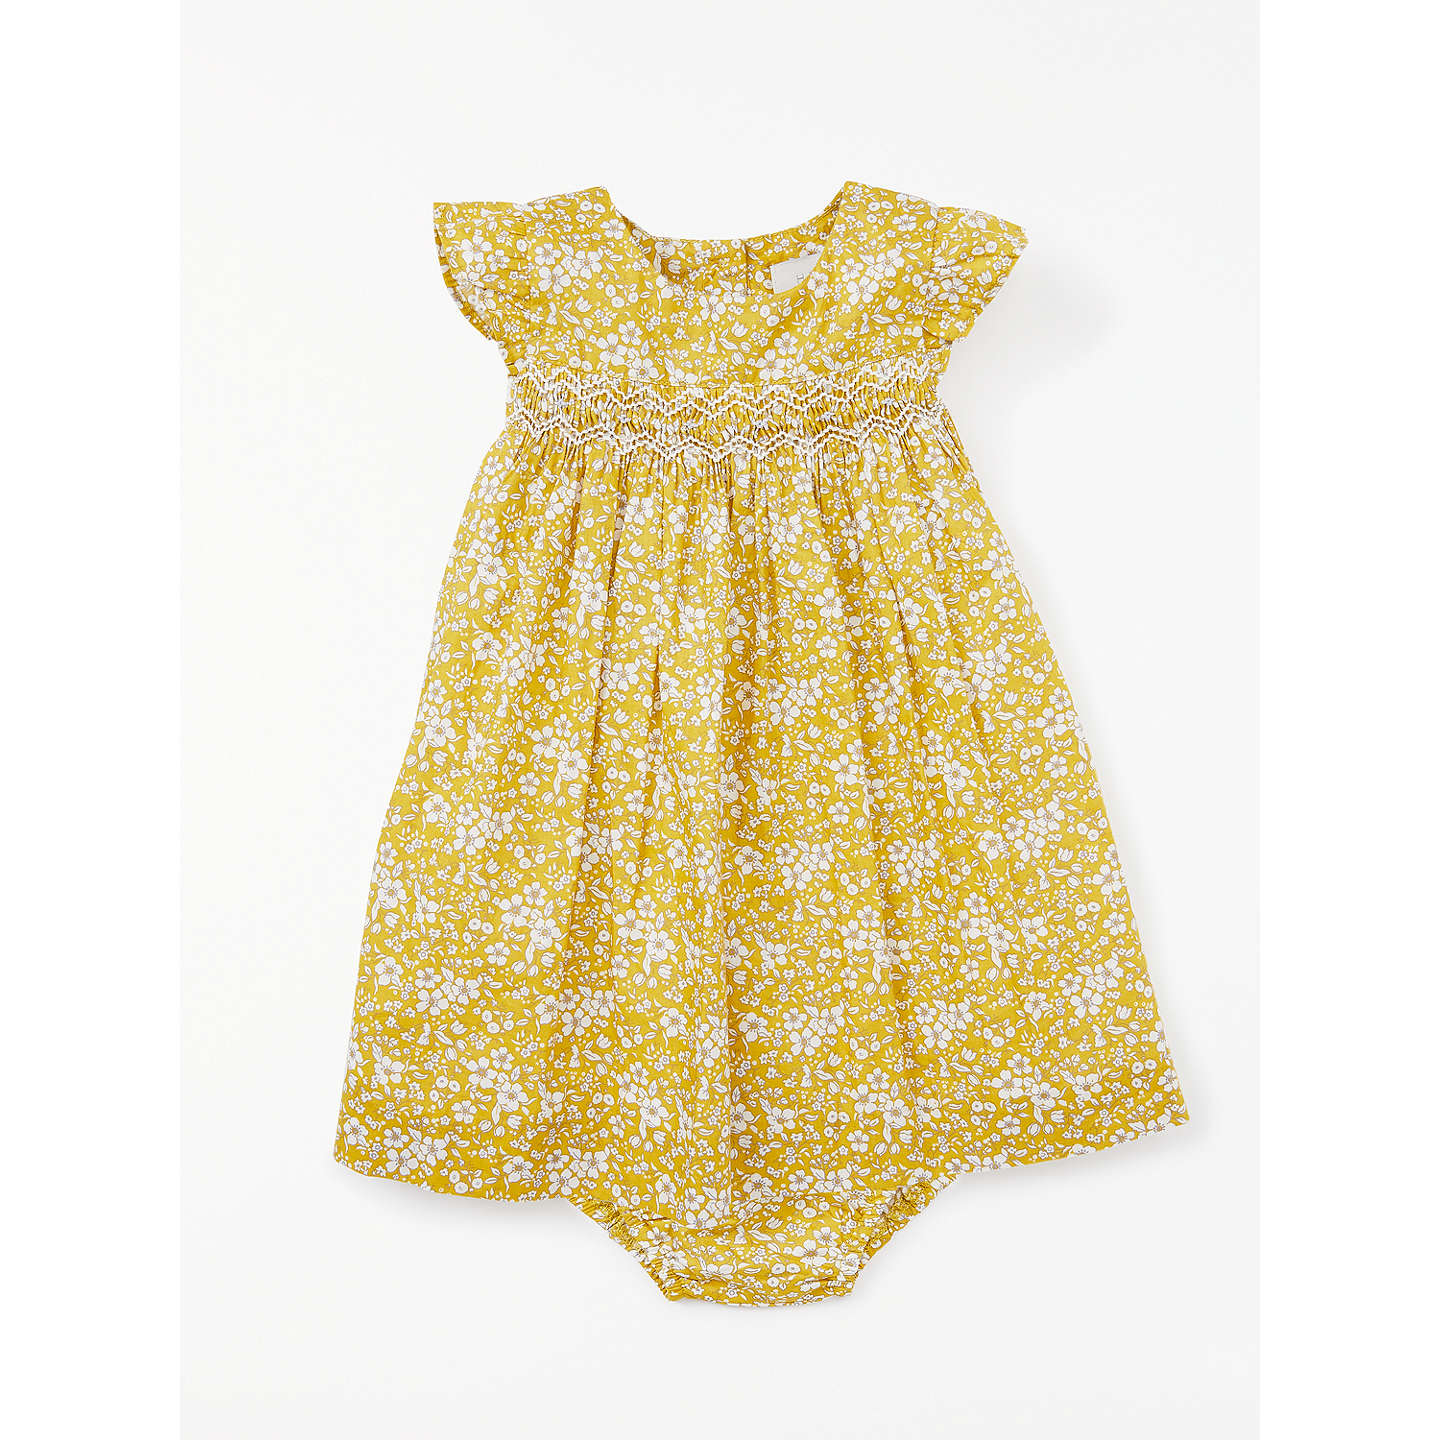 Ruby Wedding Gifts John Lewis: John Lewis Heirloom Collection Baby Floral Ruby Dress At